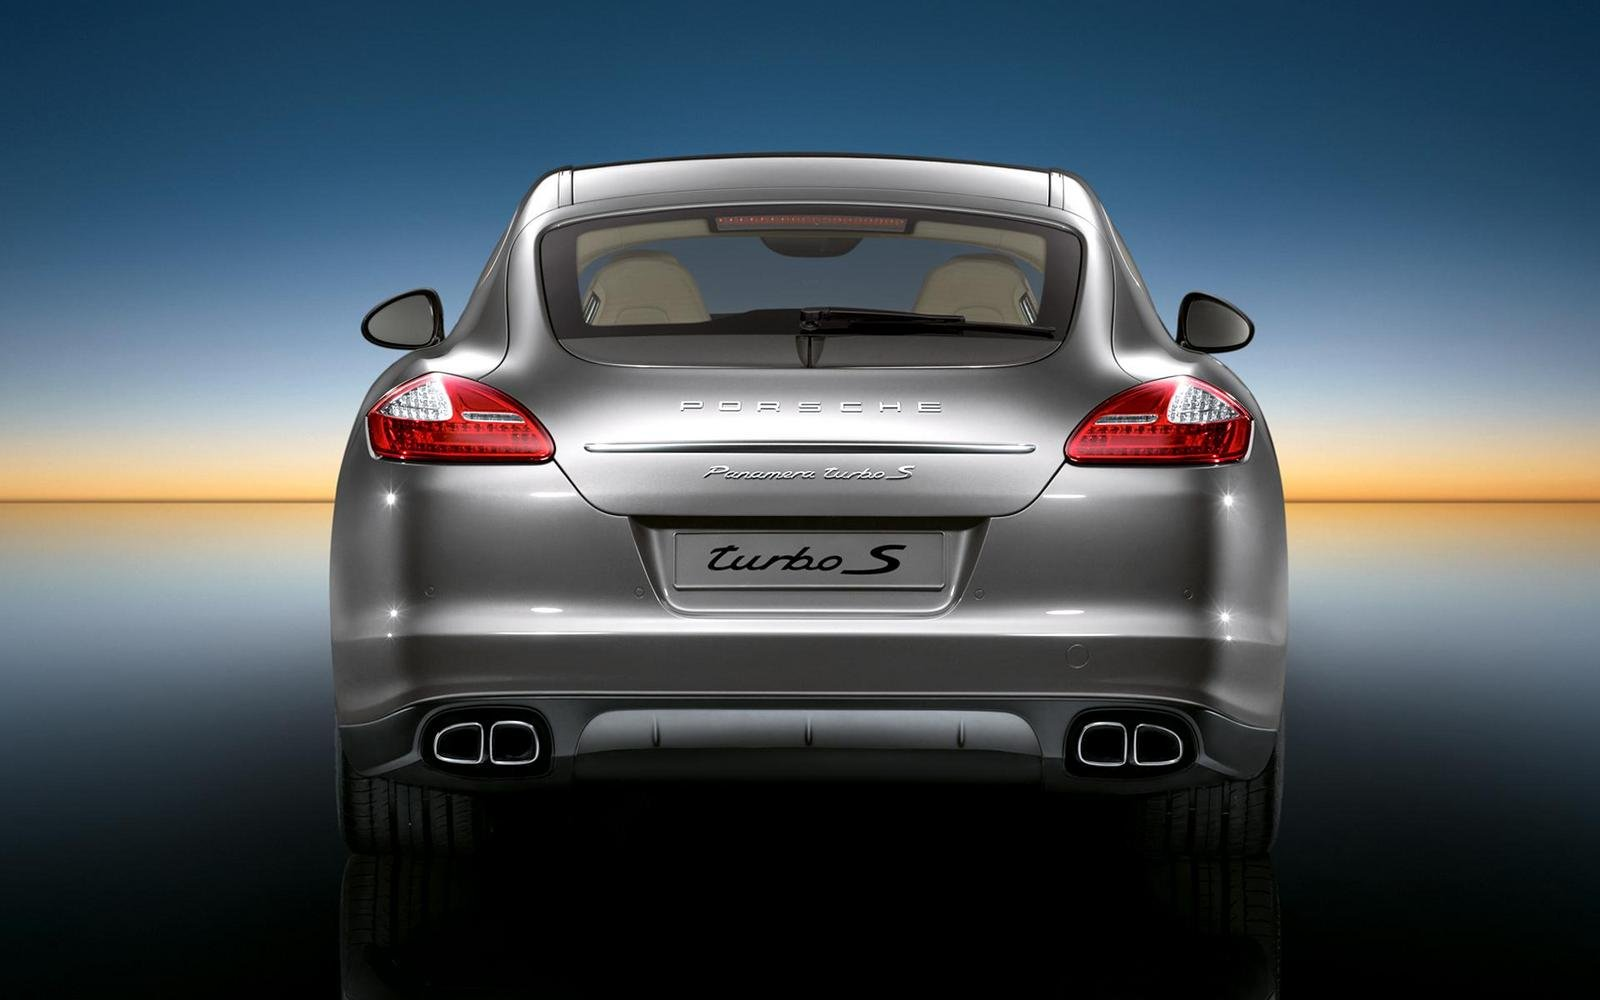 2012 porsche panamera turbo s picture 397537 car review top speed. Black Bedroom Furniture Sets. Home Design Ideas